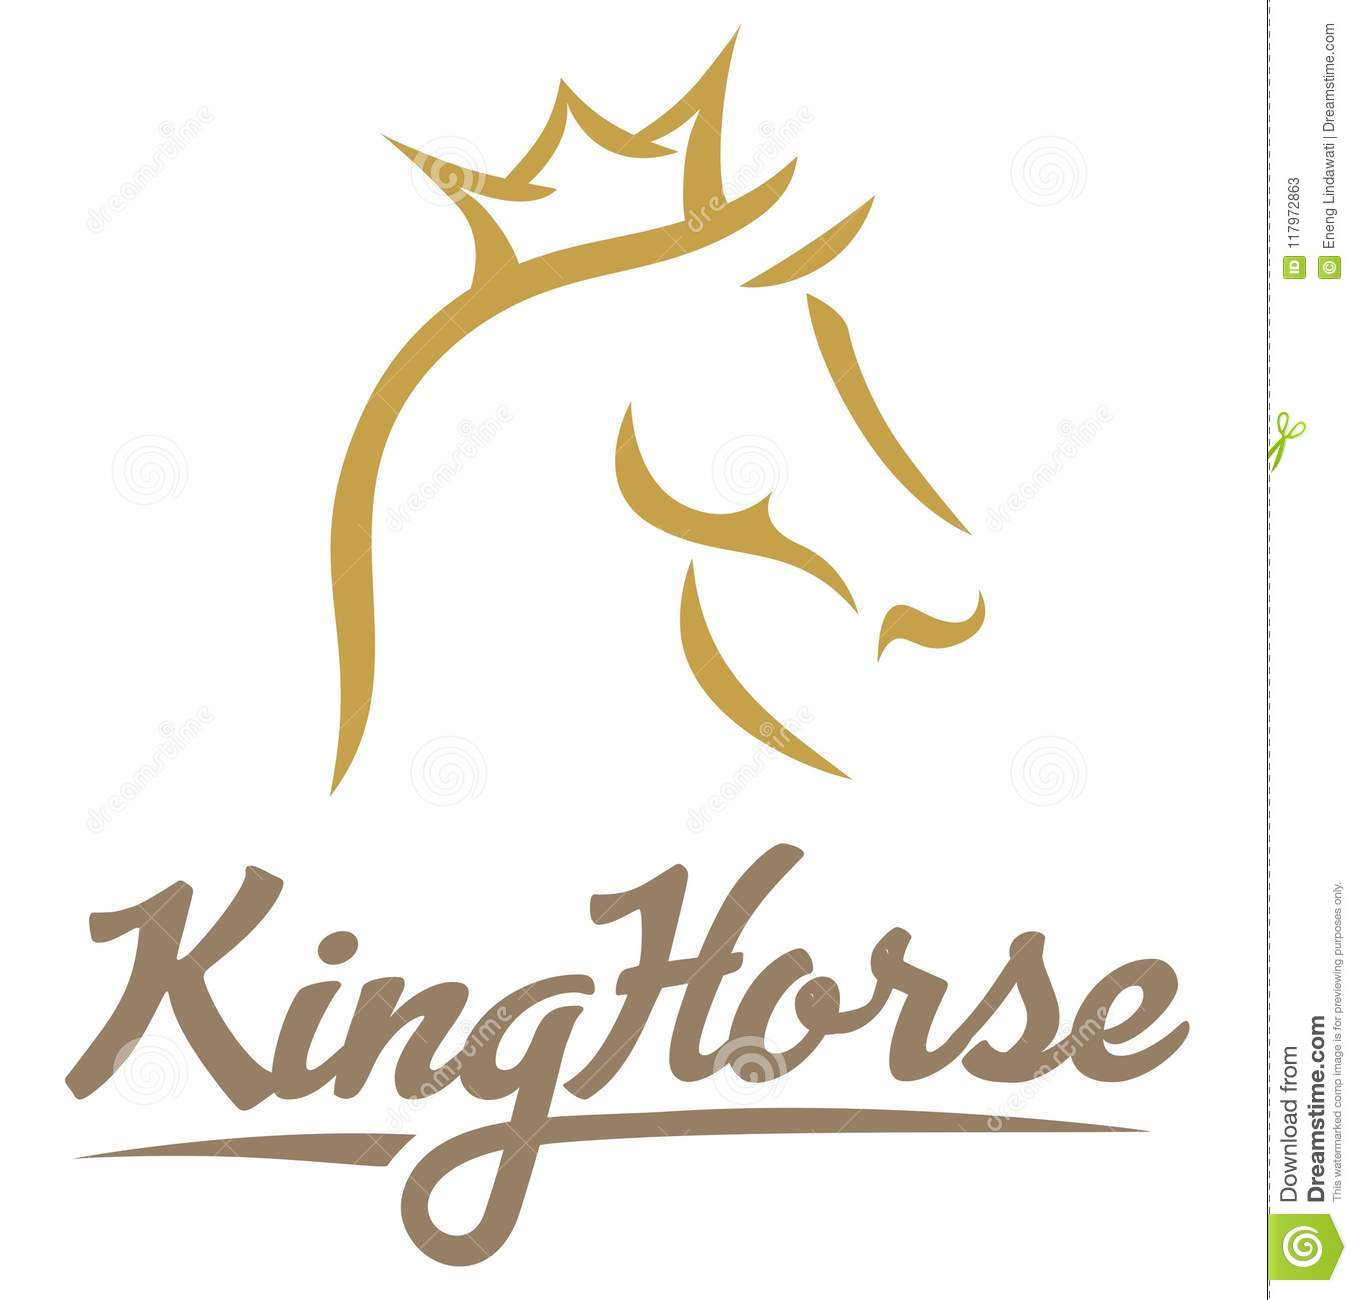 King Horse Gold Abstract Stock Illustration Illustration Of Sketch 117972863